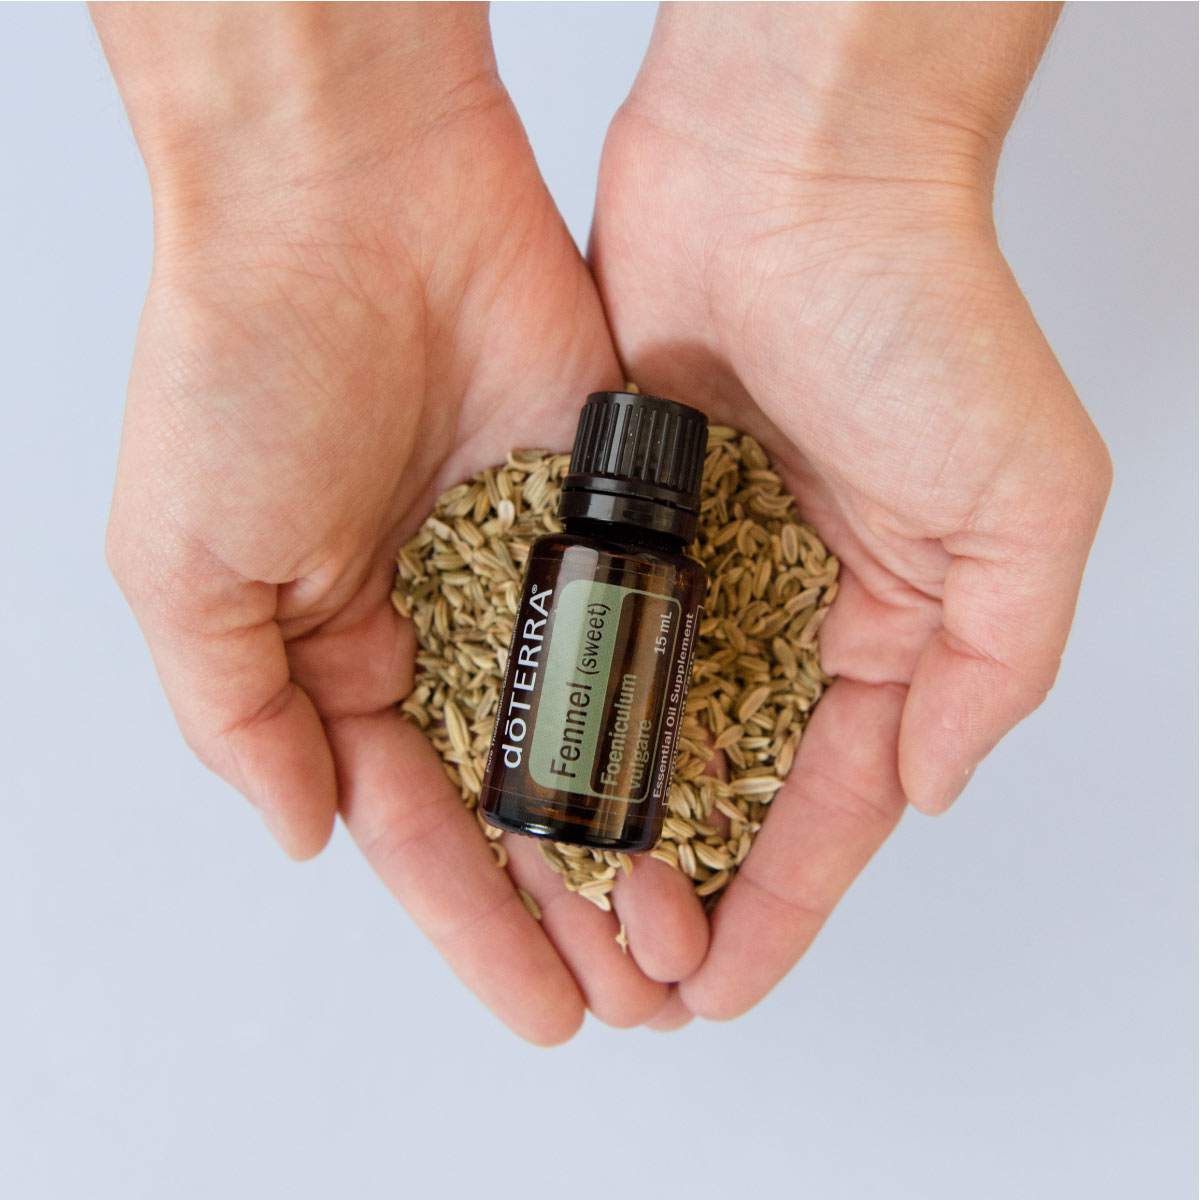 Woman's hands holding Fennel essential oil bottle and fennel seeds. Can you drink Fennel essential oil? When used in the proper amounts, Fennel oil can be safe to use internally.